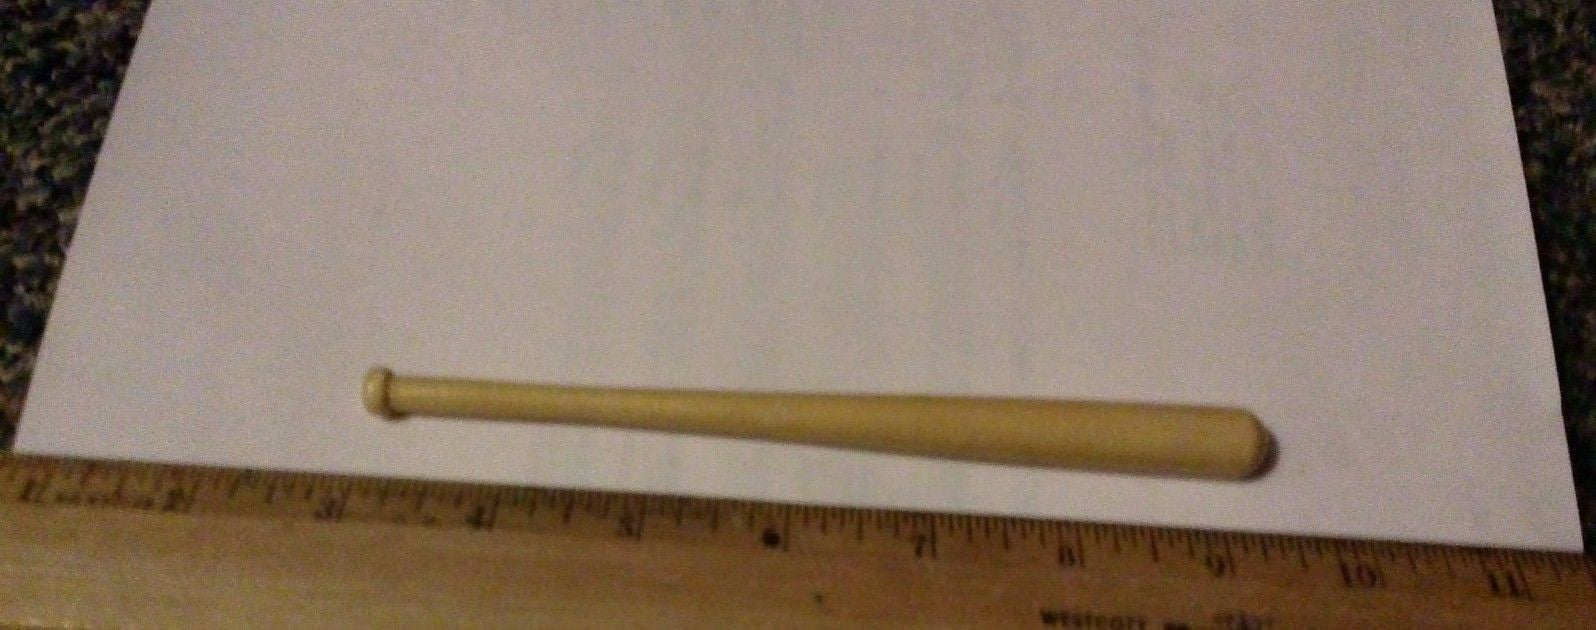 A143 3rd SON Books 1/6 Scale wooden finished baseball bat